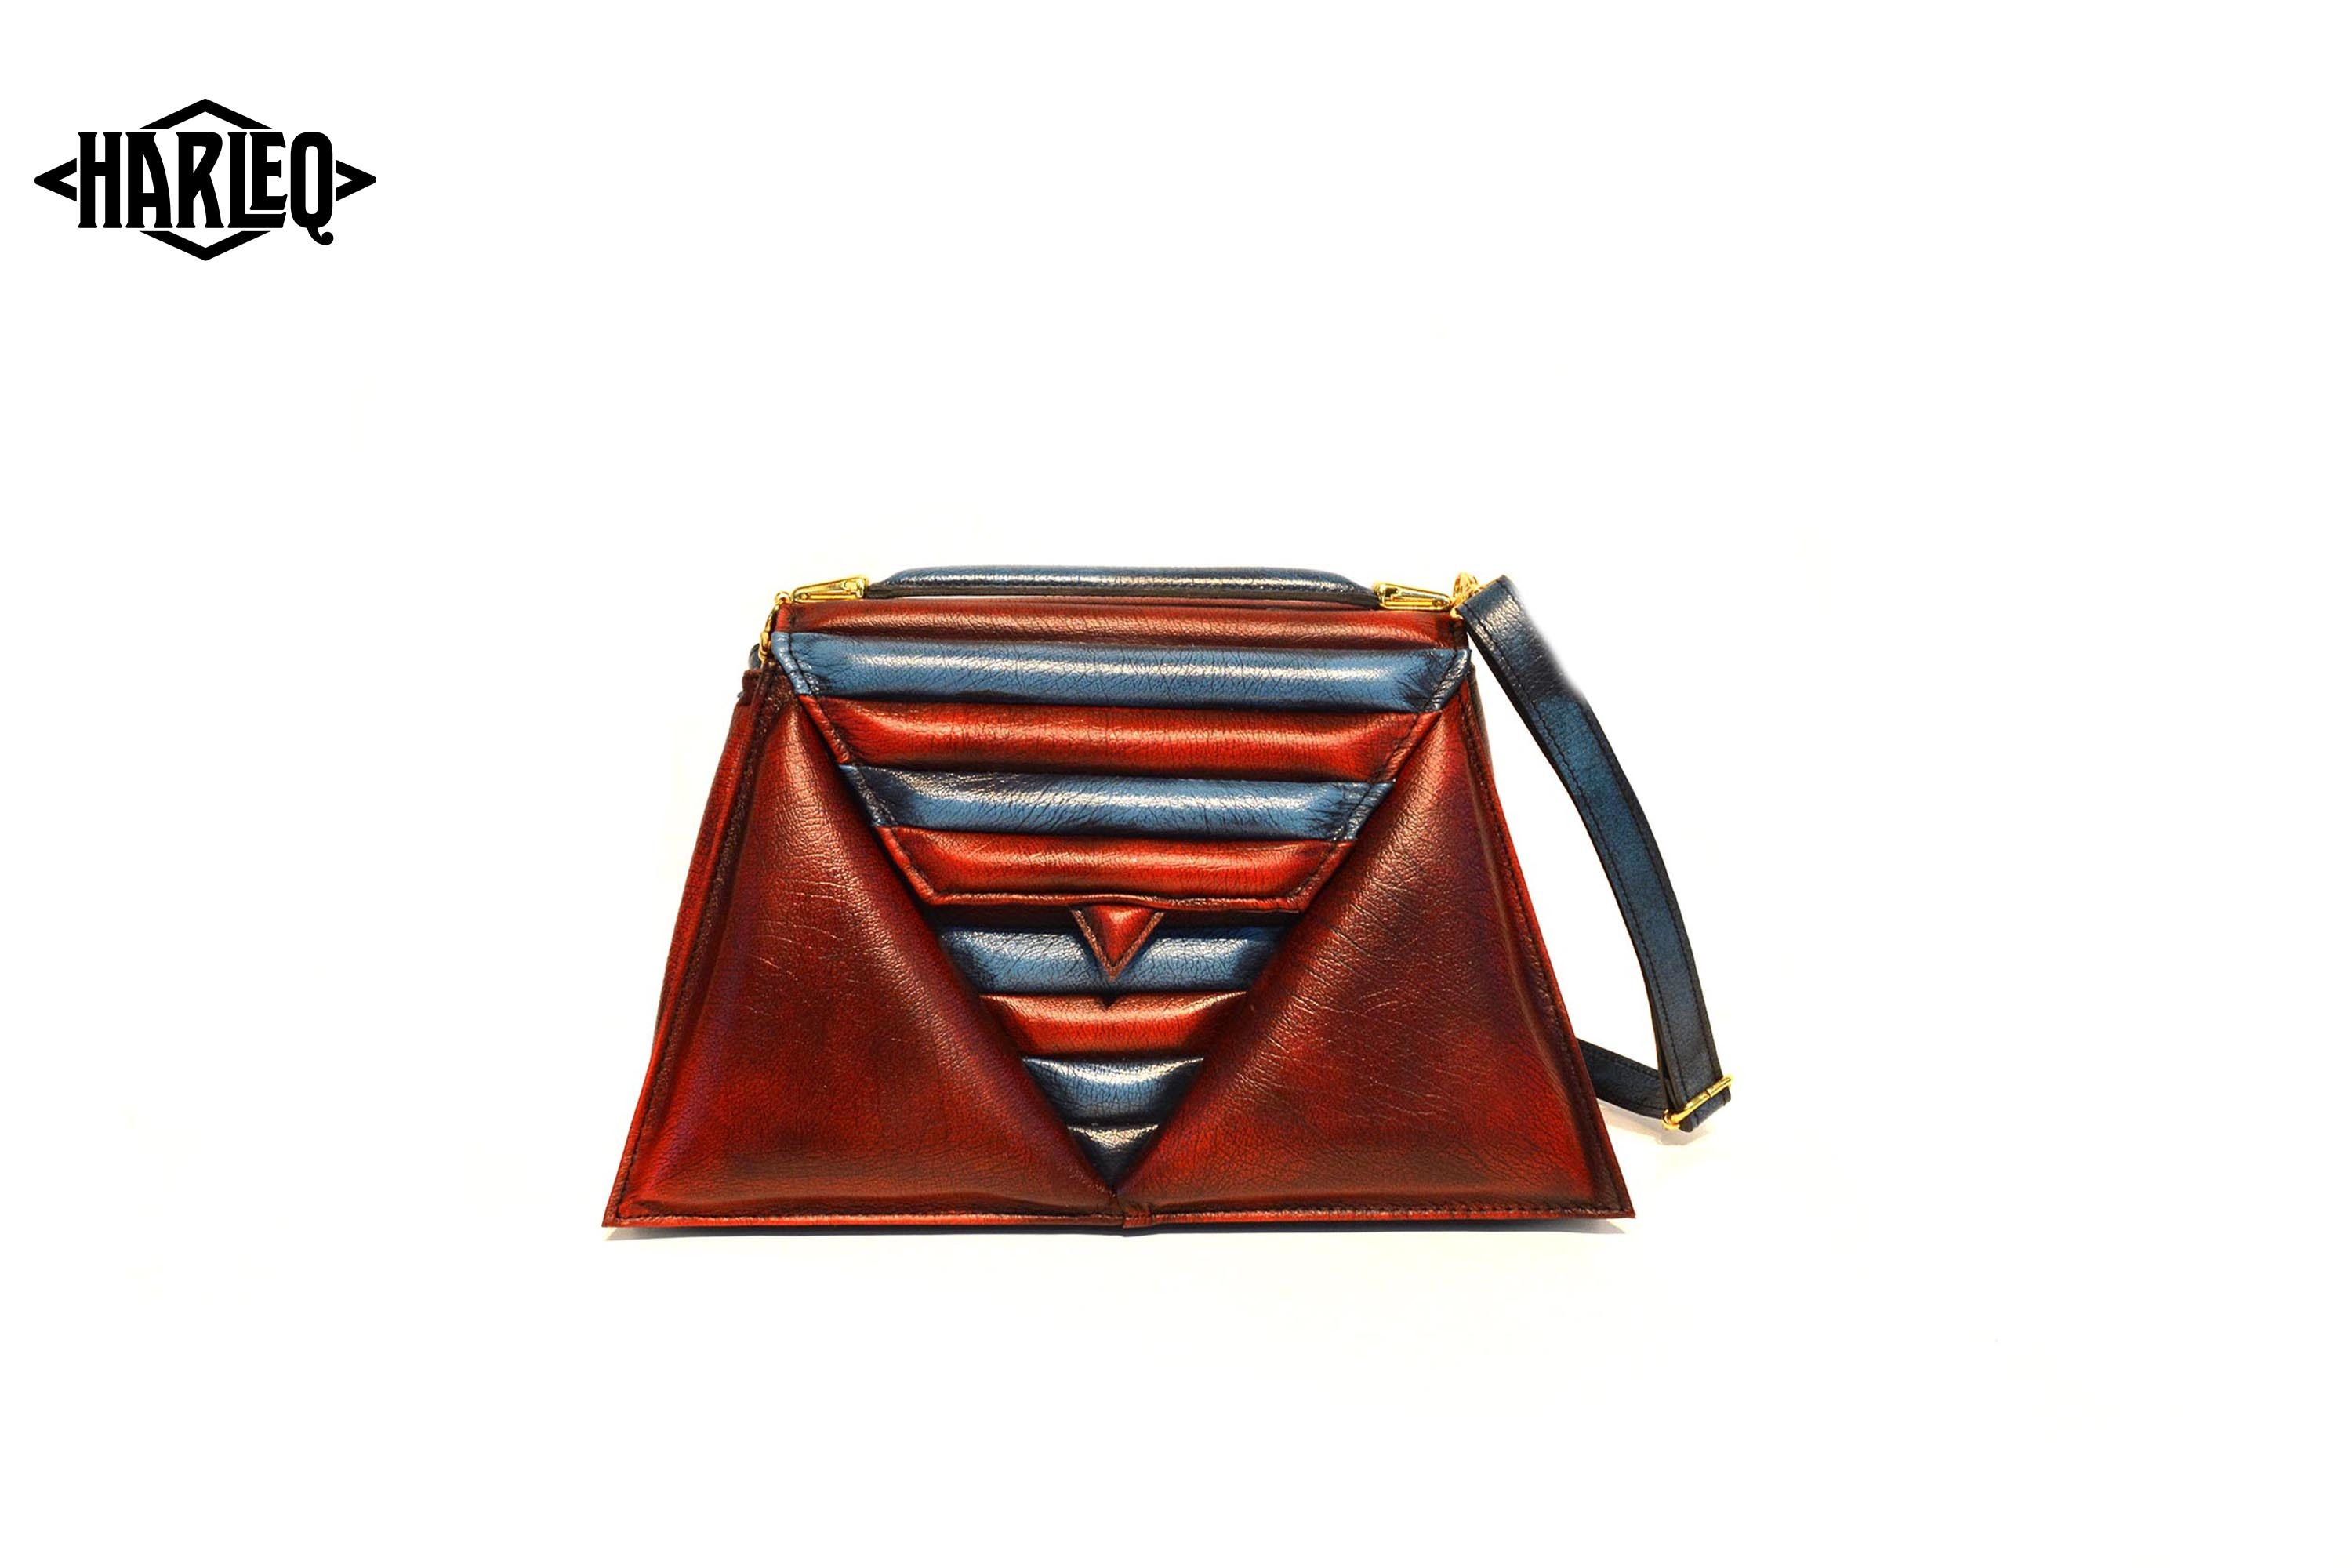 harleq-triangles-bag-red-blue-leathers